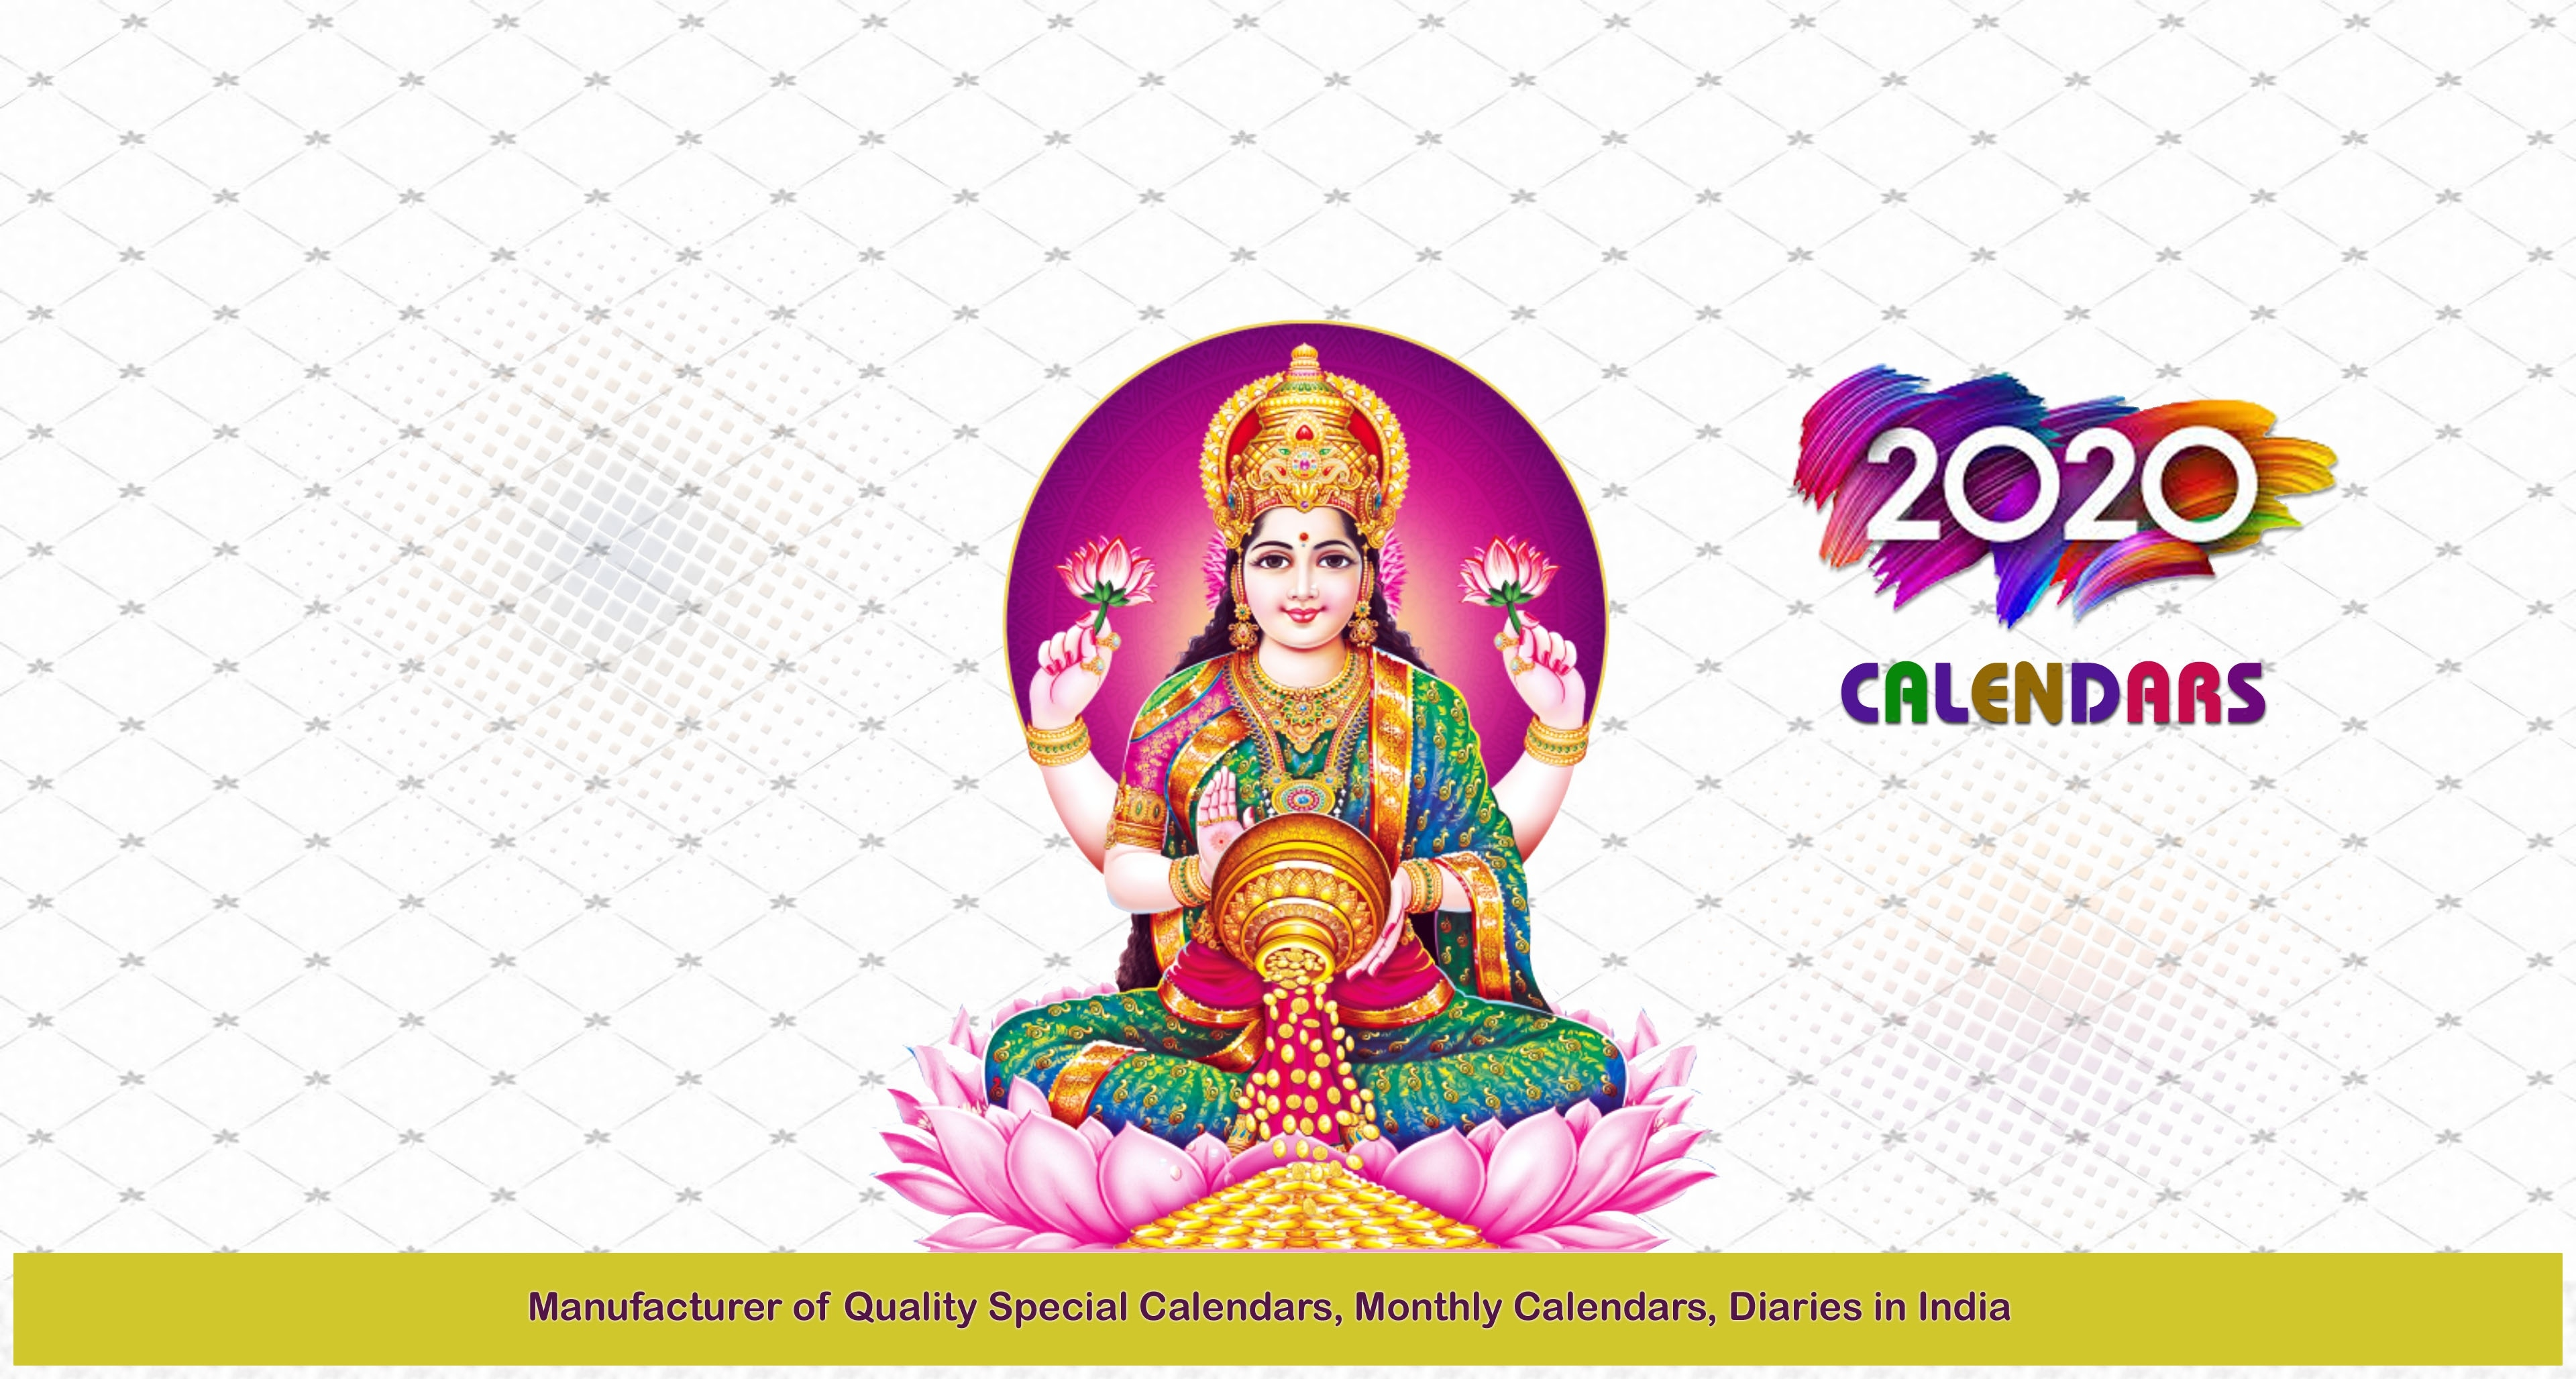 Anand Screen Printers - Calendar Manufactures In Sivakasi, Daily_Calendar Printing In Sivakasi